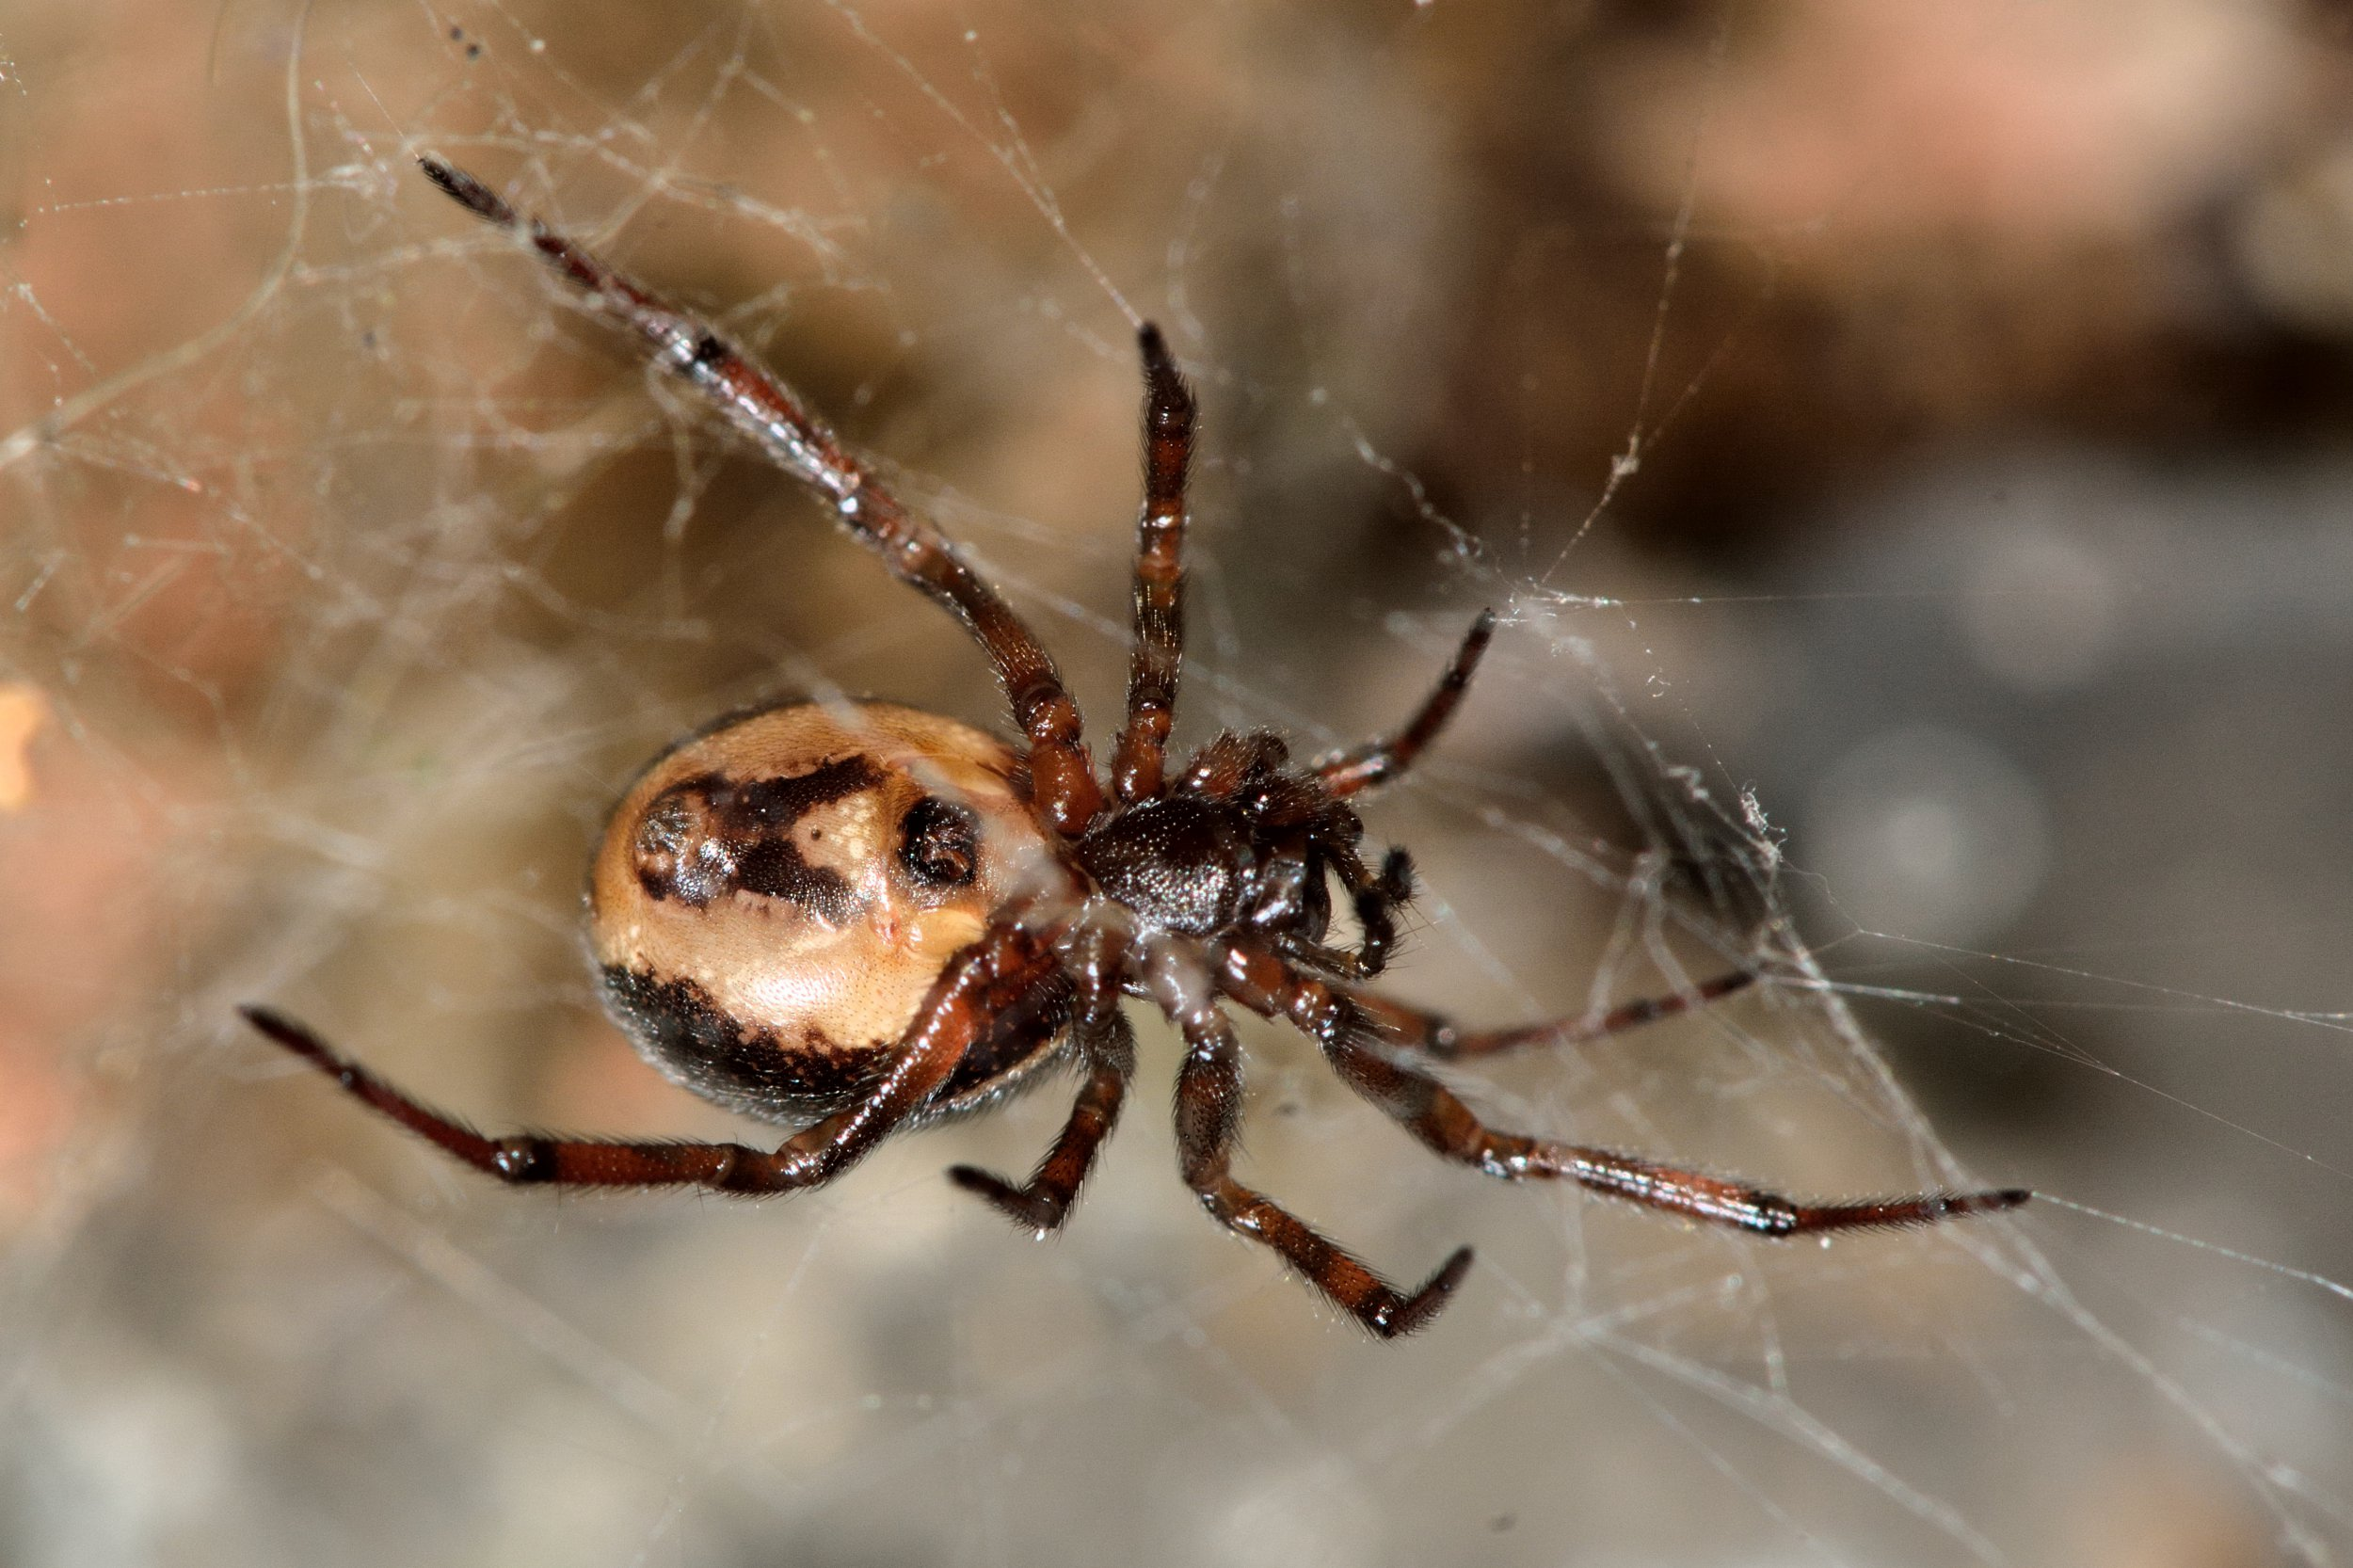 Man found dead after reporting false widow spider bite